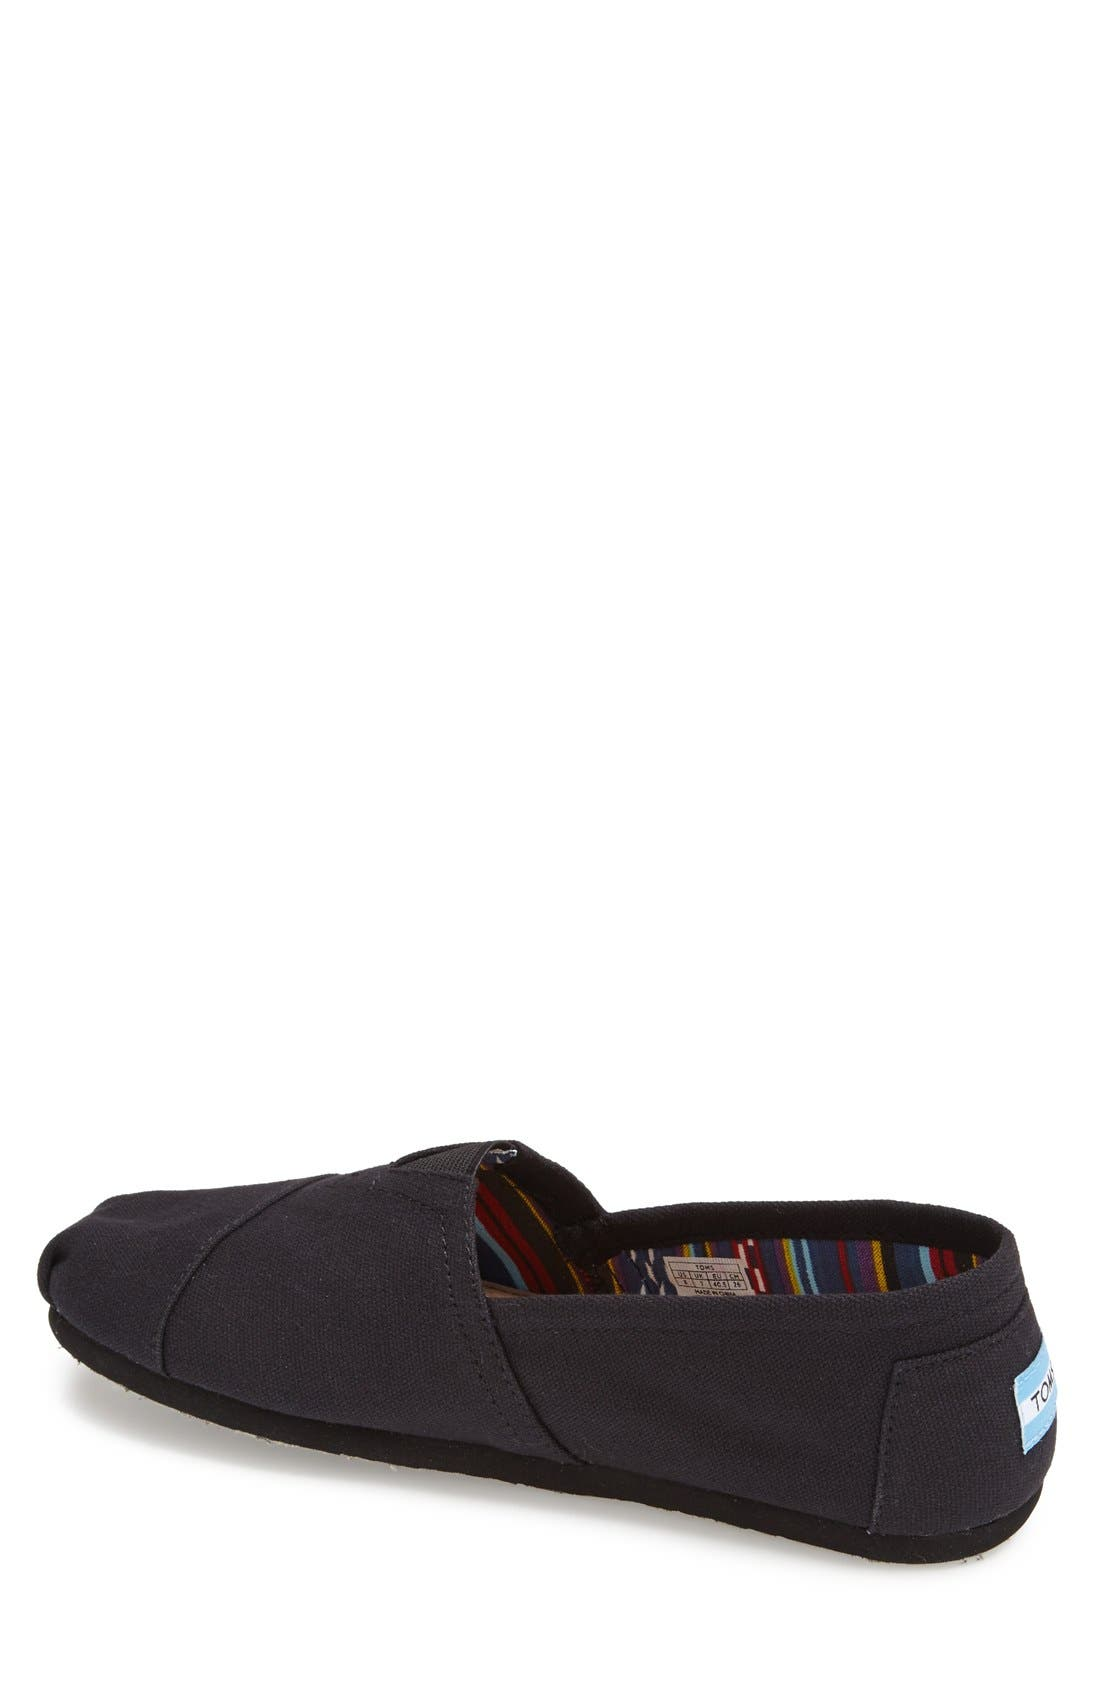 'Classic' Canvas Slip-On,                             Alternate thumbnail 2, color,                             Black/ Black